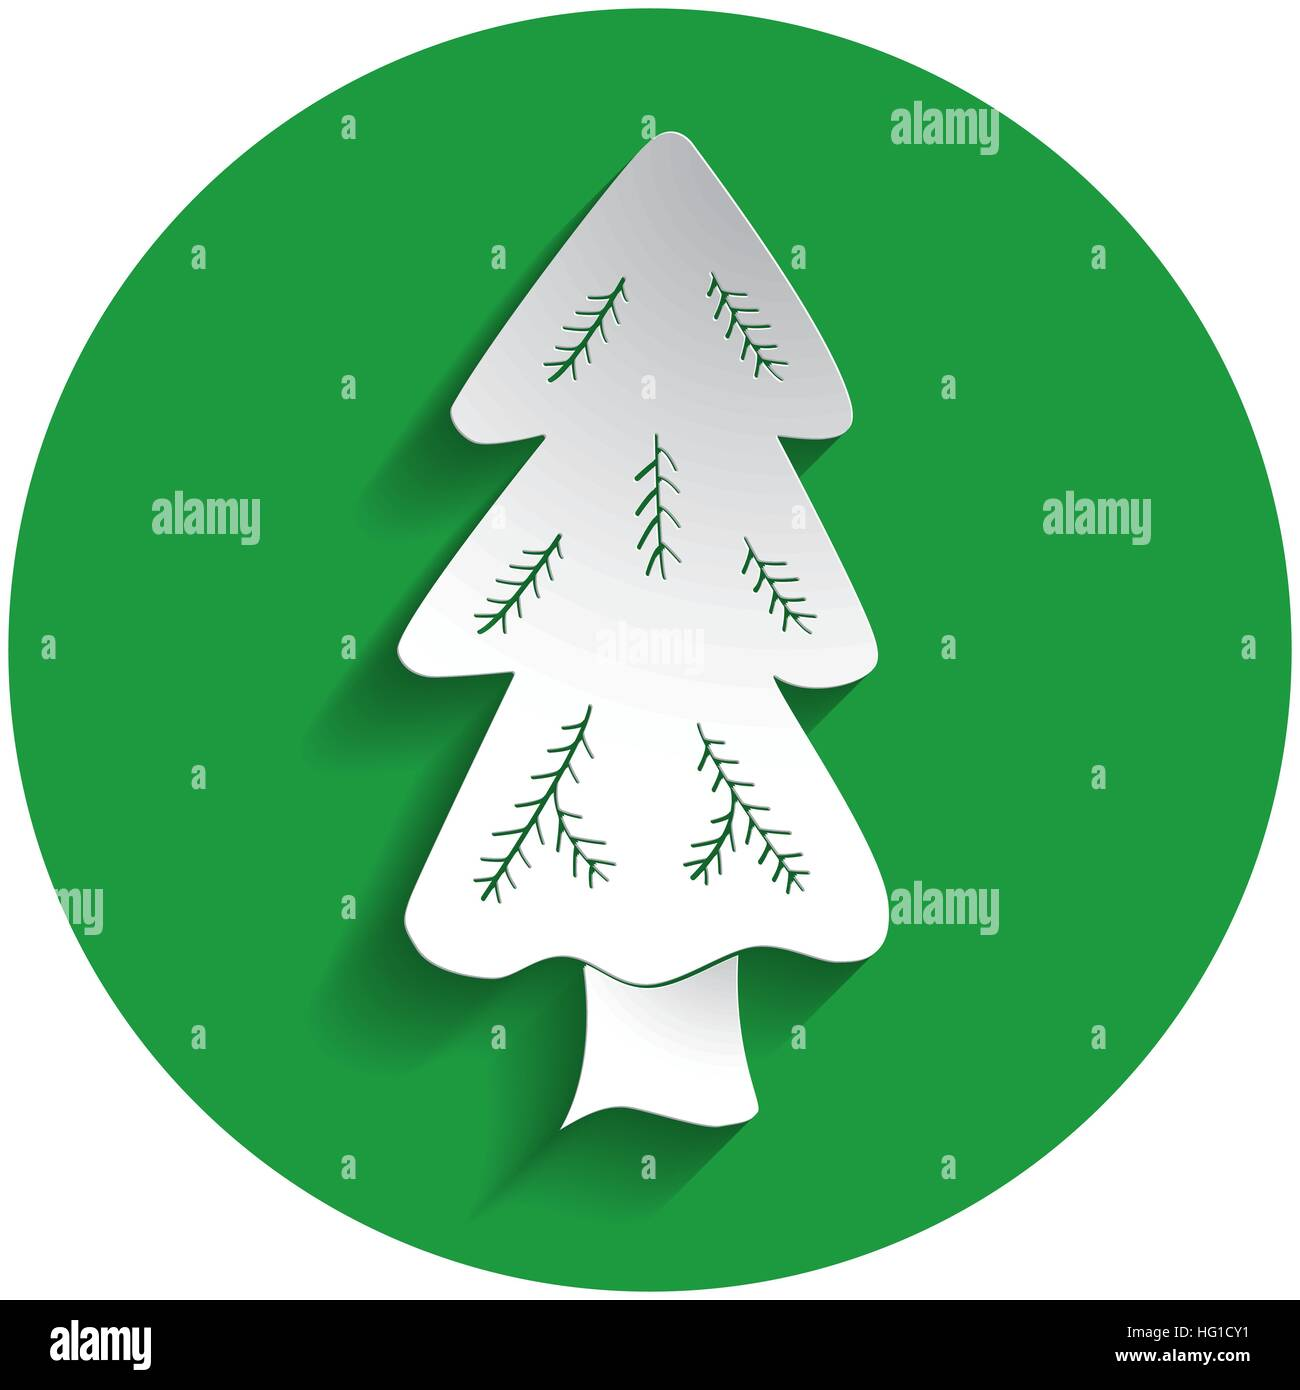 Spruce icon in paper style on green circle - Stock Vector